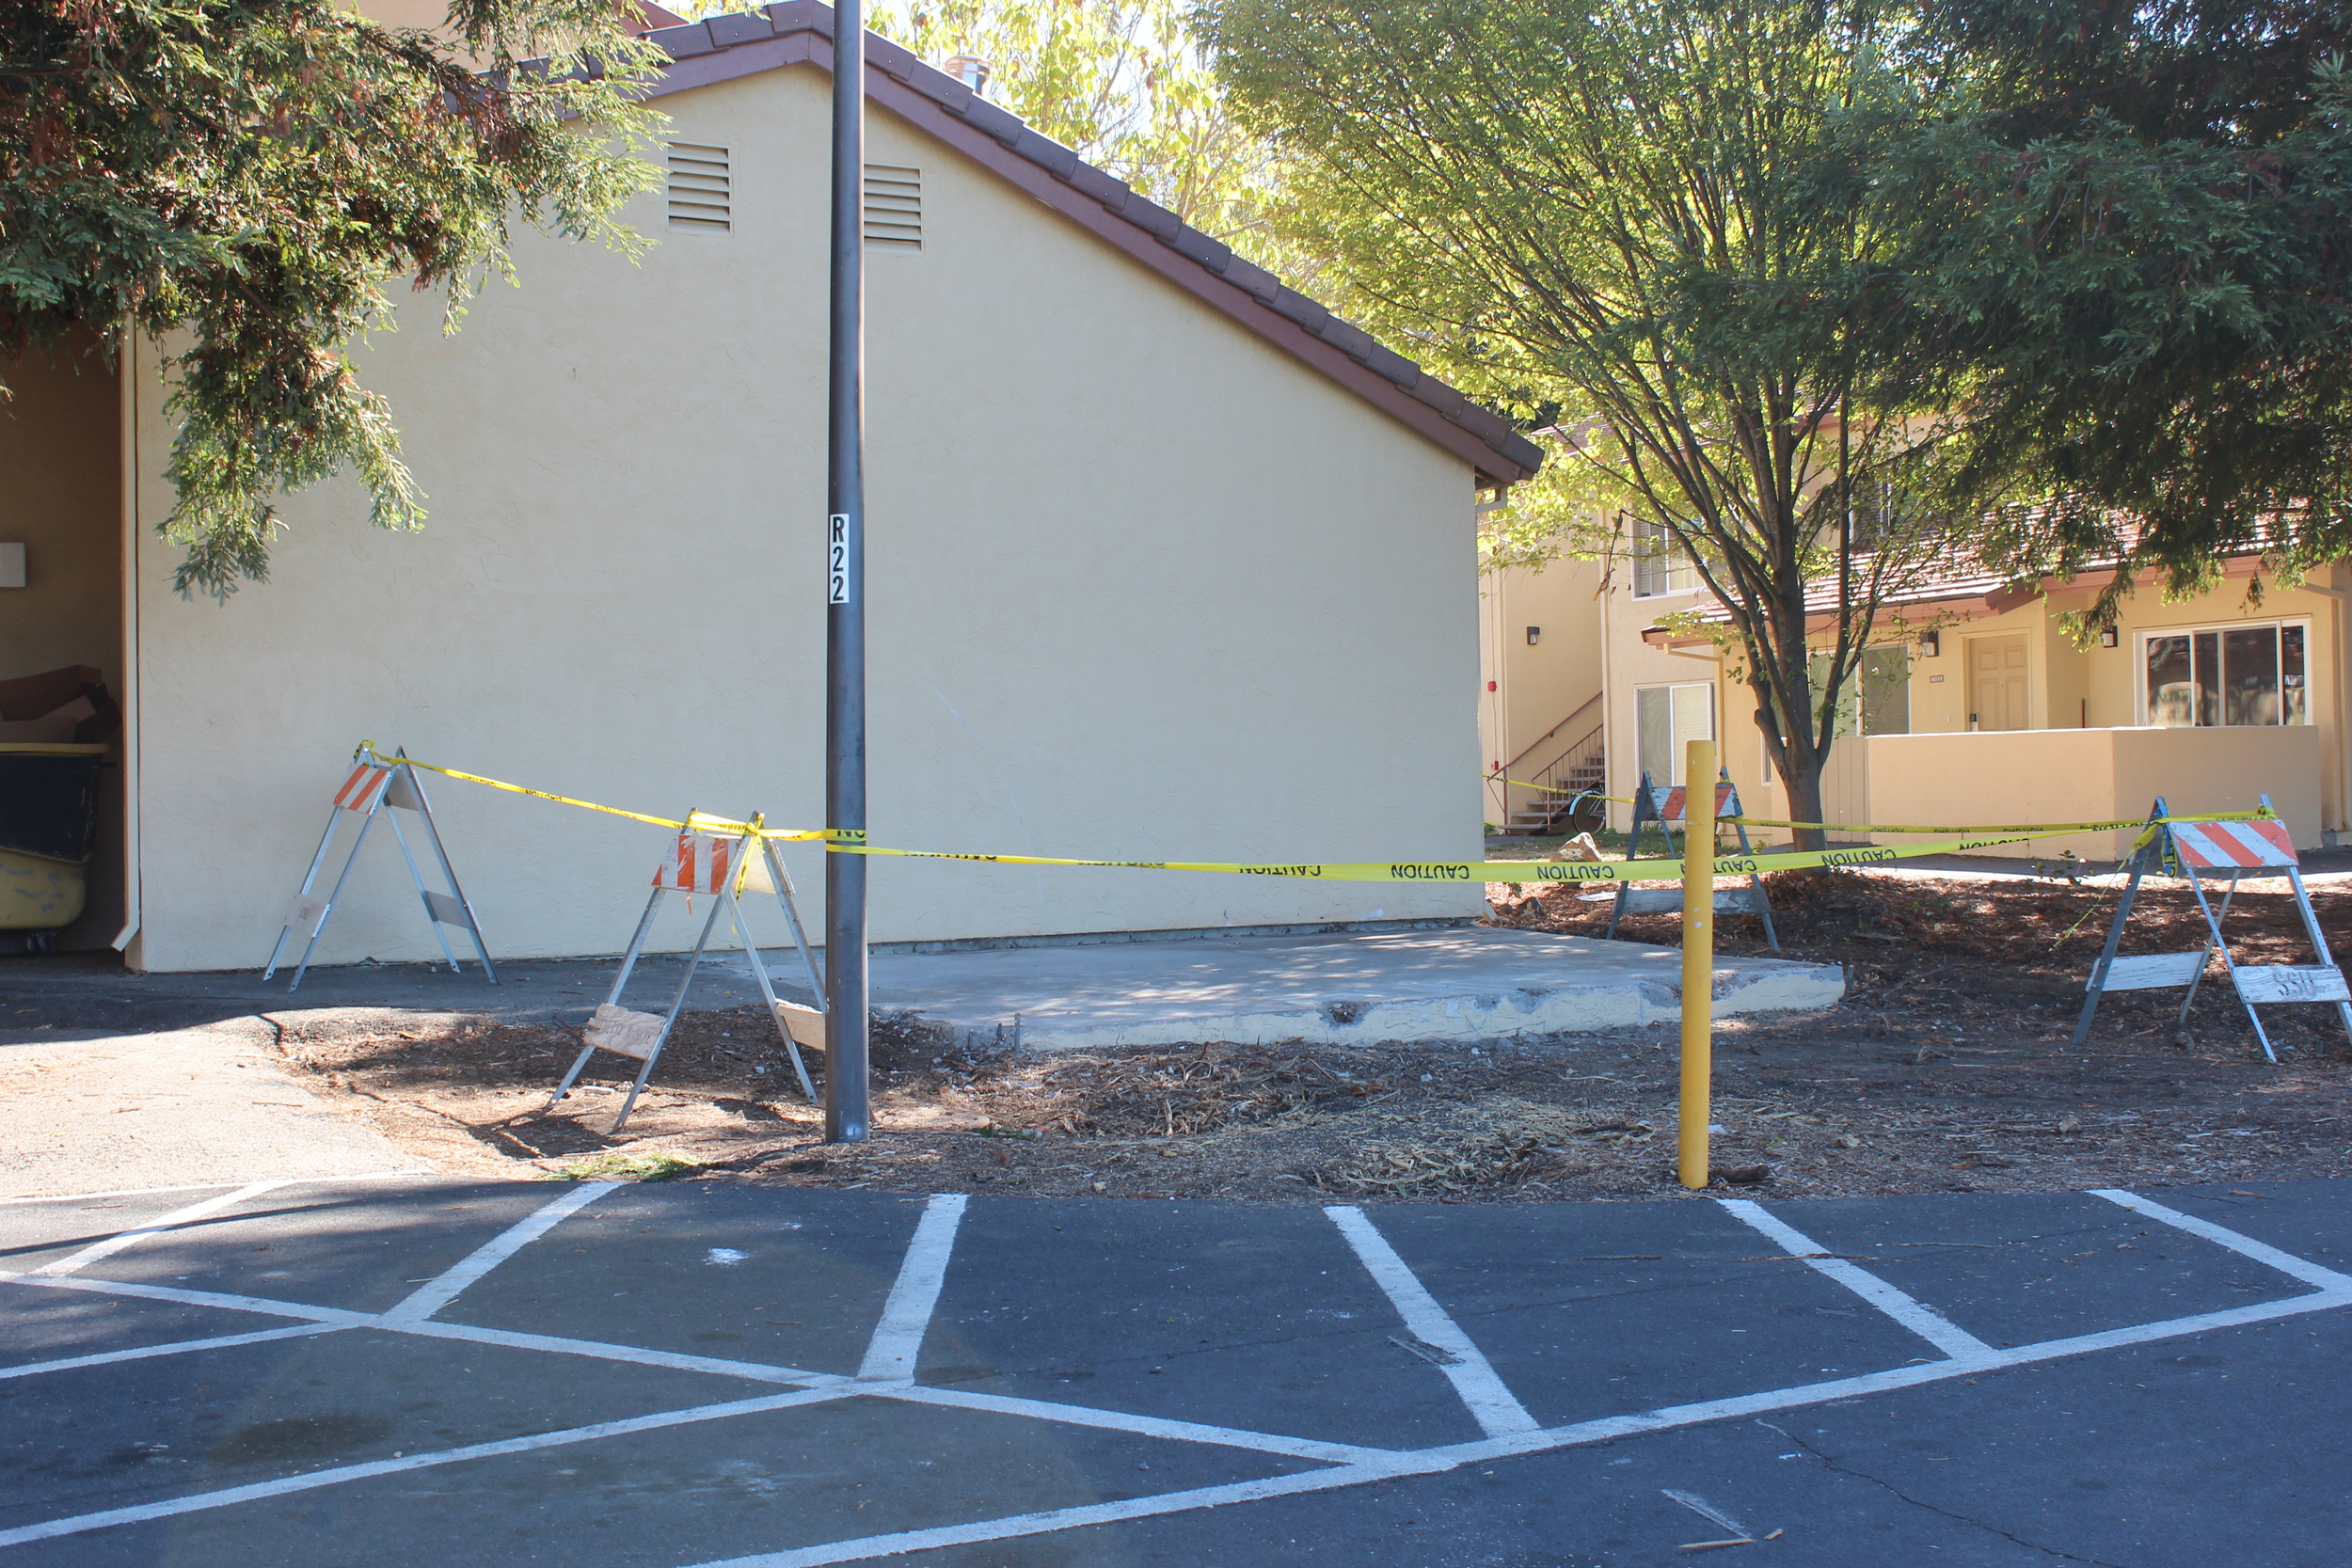 Residents of Cabernet Village in the freshmen dorms were greeted with unfinished construction upon moving in August.